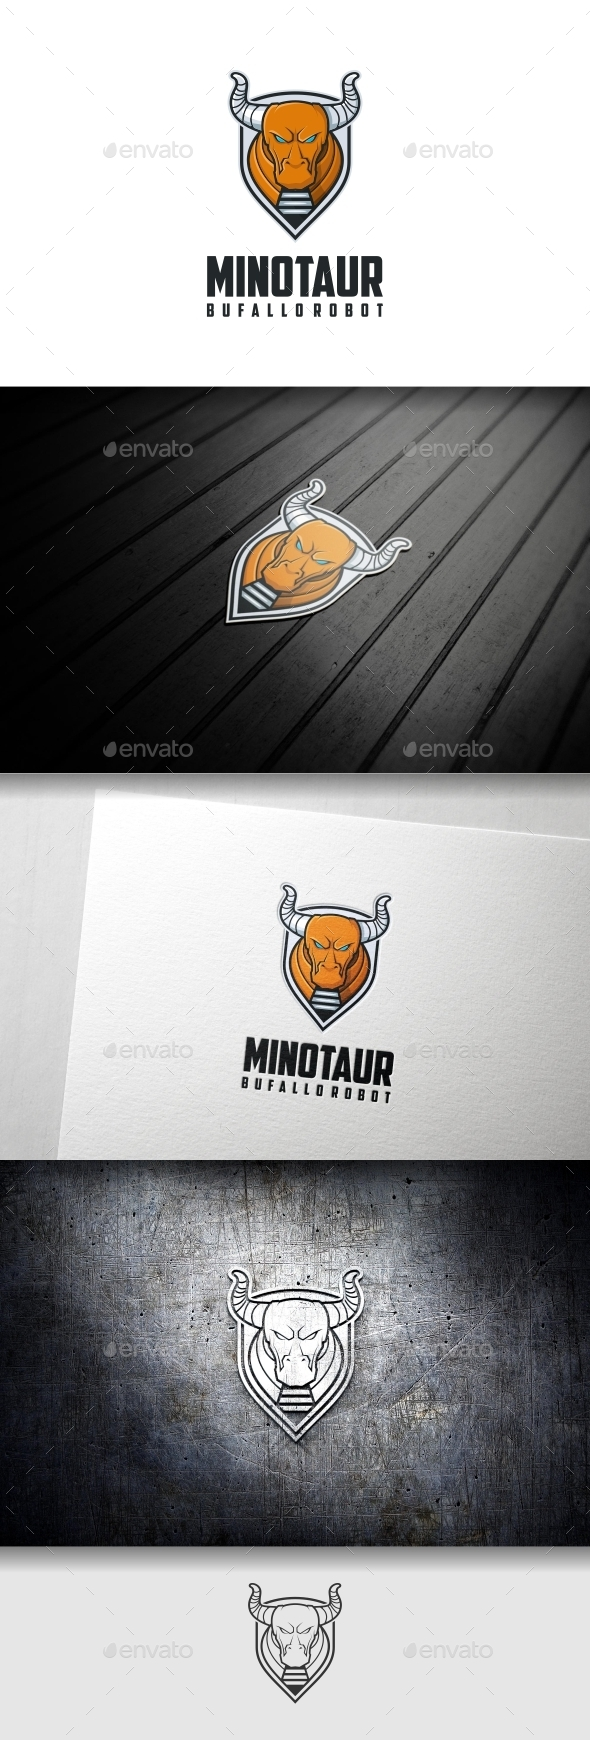 Minotaur Buffalo Logo Template - Animals Logo Templates